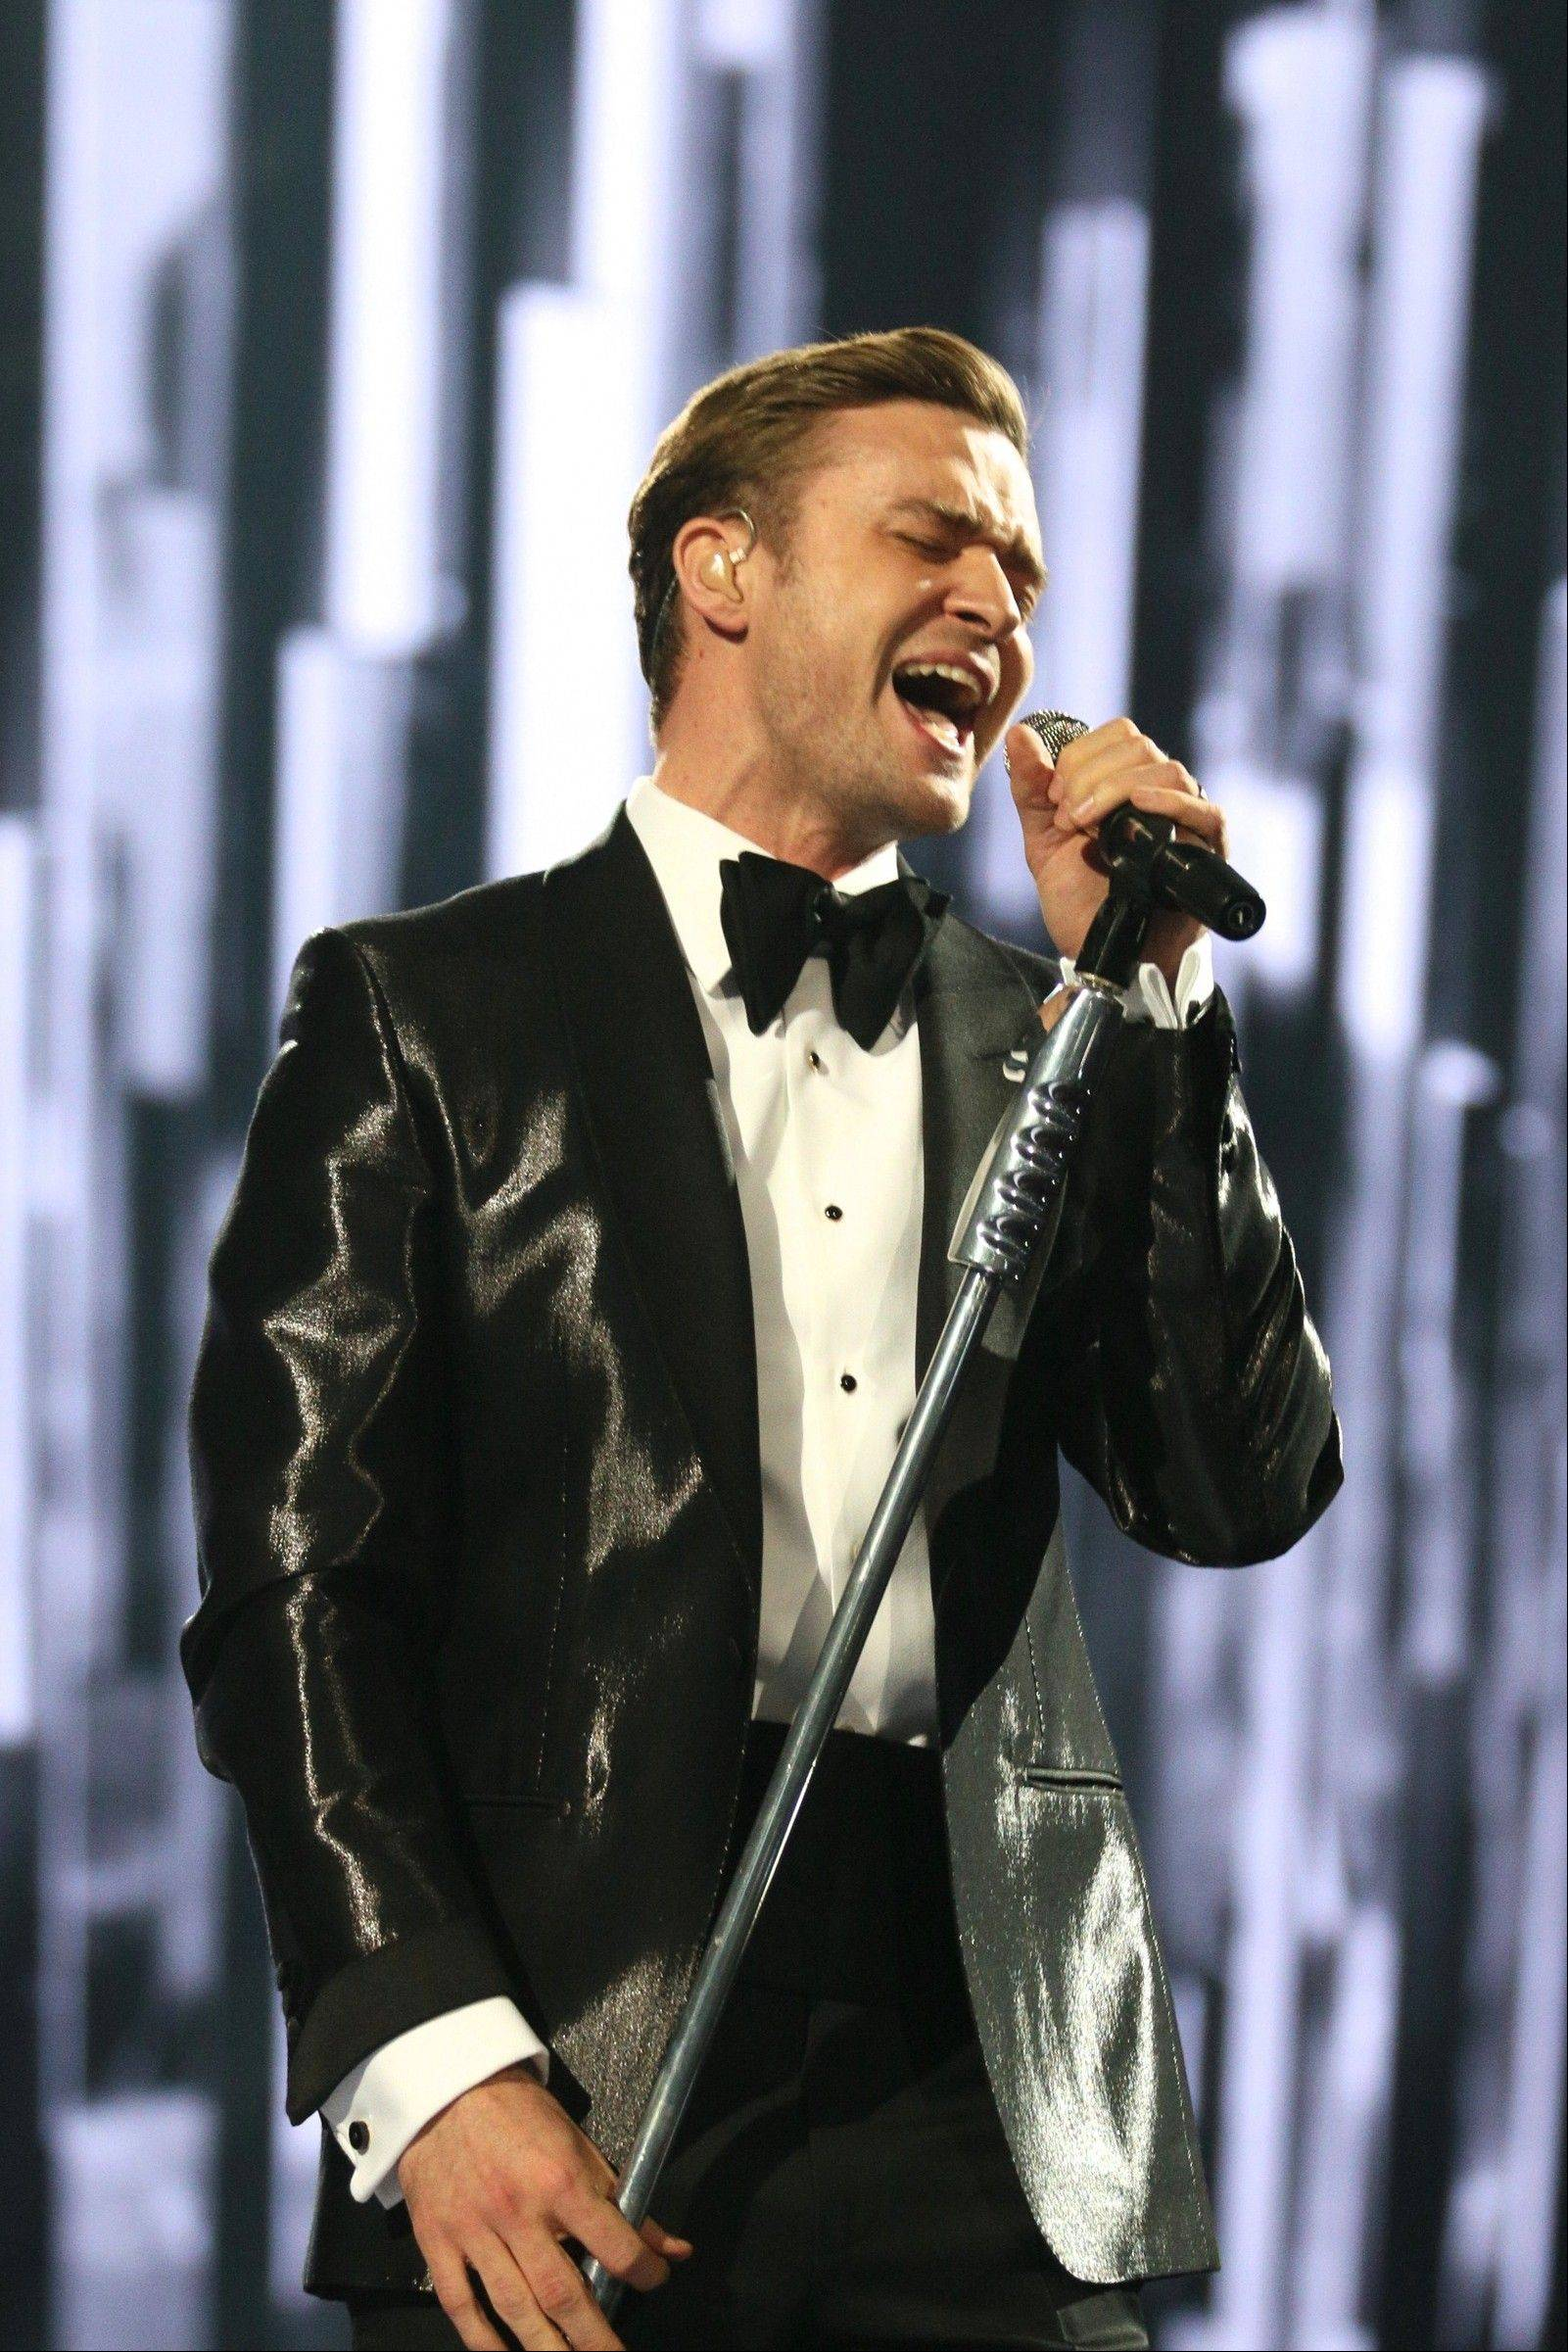 Justin Timberlake performs on stage during the BRIT Awards 2013 in London.